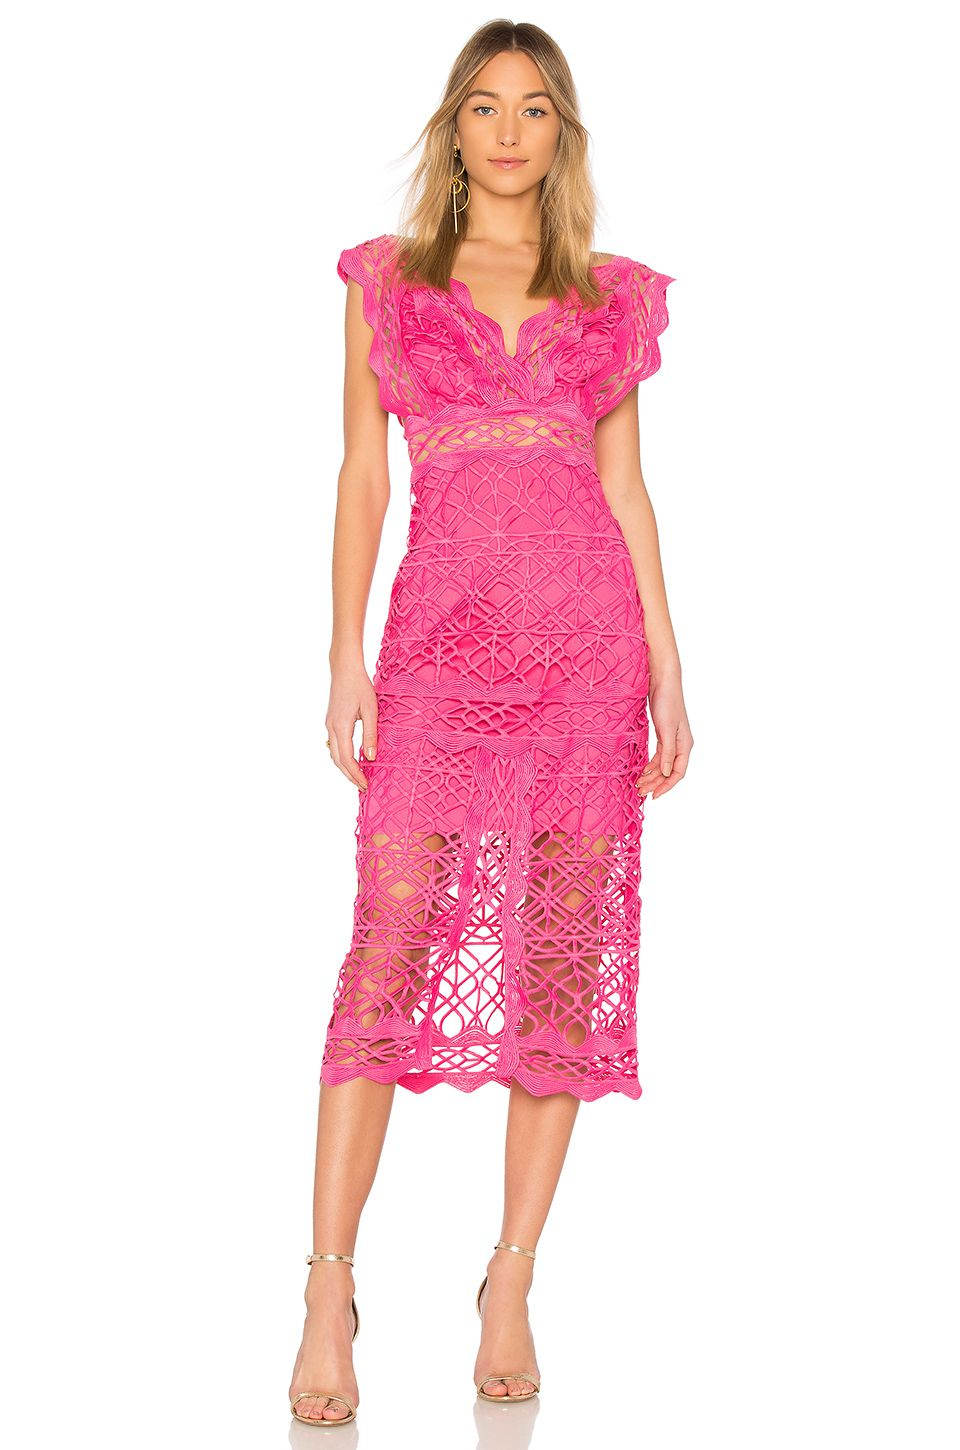 79cc7e120fd9 REVOLVE | Women's Fashion @ Shopstyle | Dresses, Fashion, Derby dress